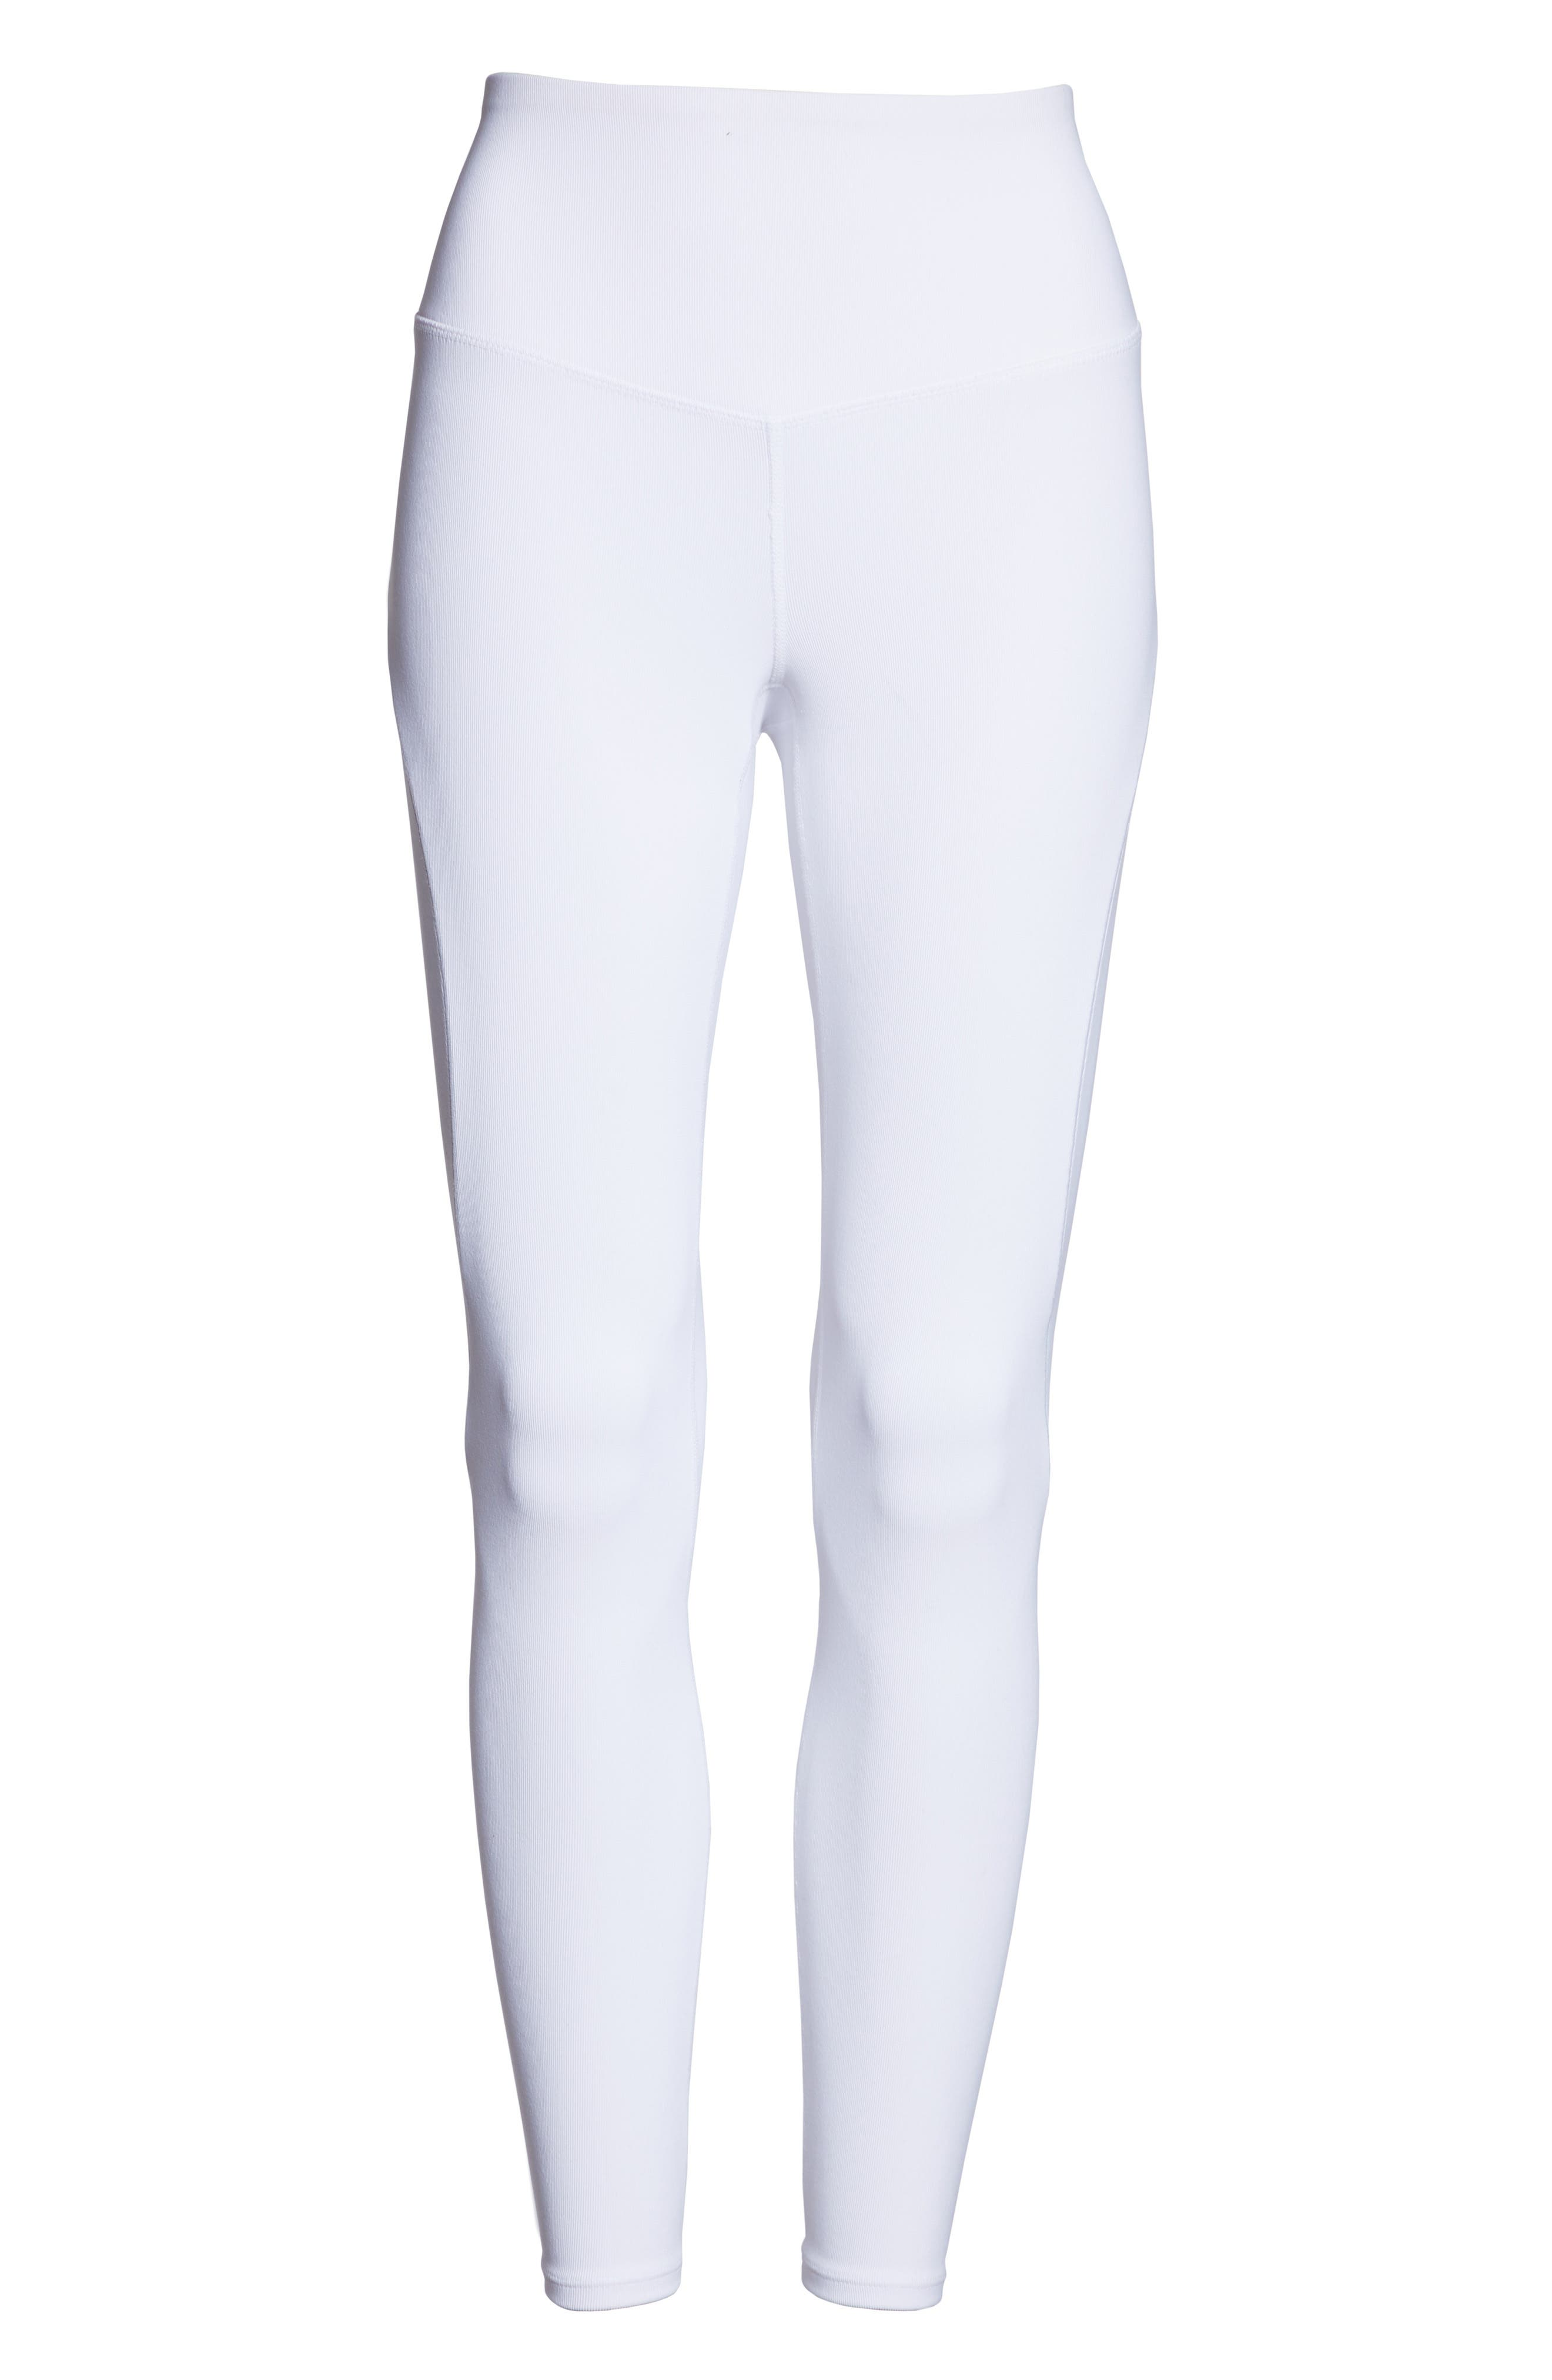 Free People FP Movement Formation High Waist Ankle Leggings,                             Alternate thumbnail 7, color,                             WHITE